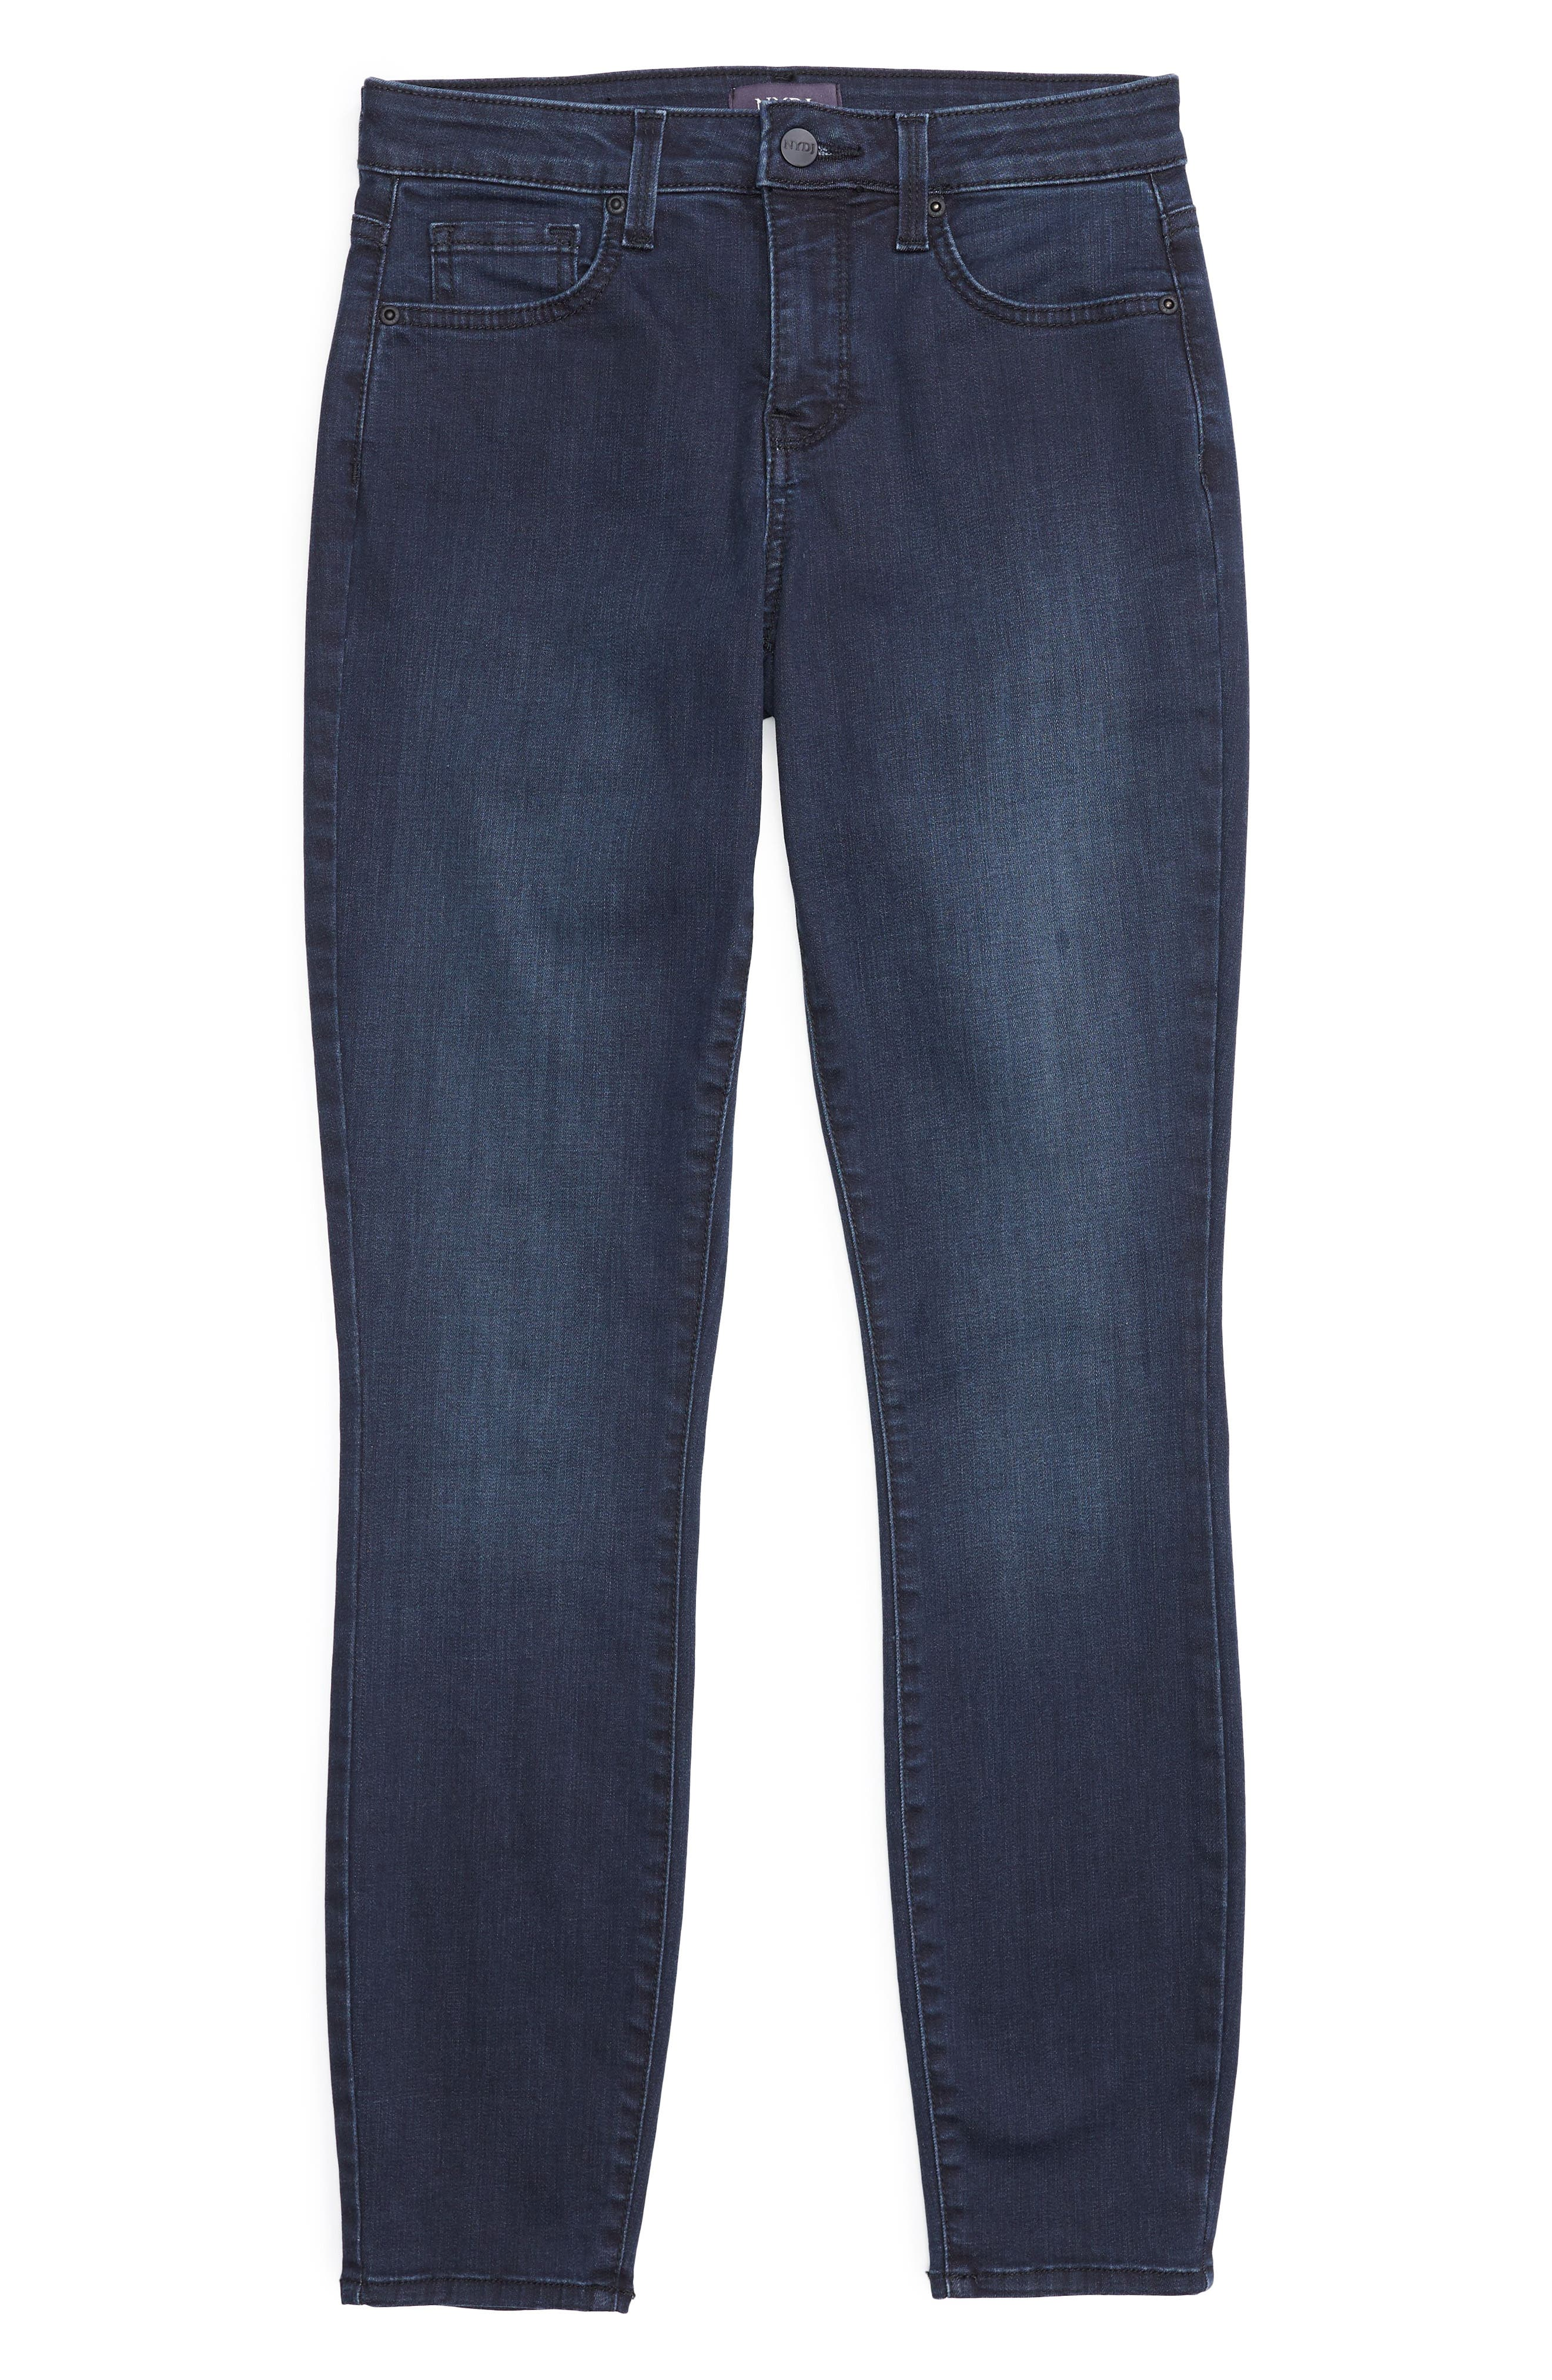 Ami Stretch Ankle Skinny Jeans,                             Alternate thumbnail 4, color,                             FALLEN